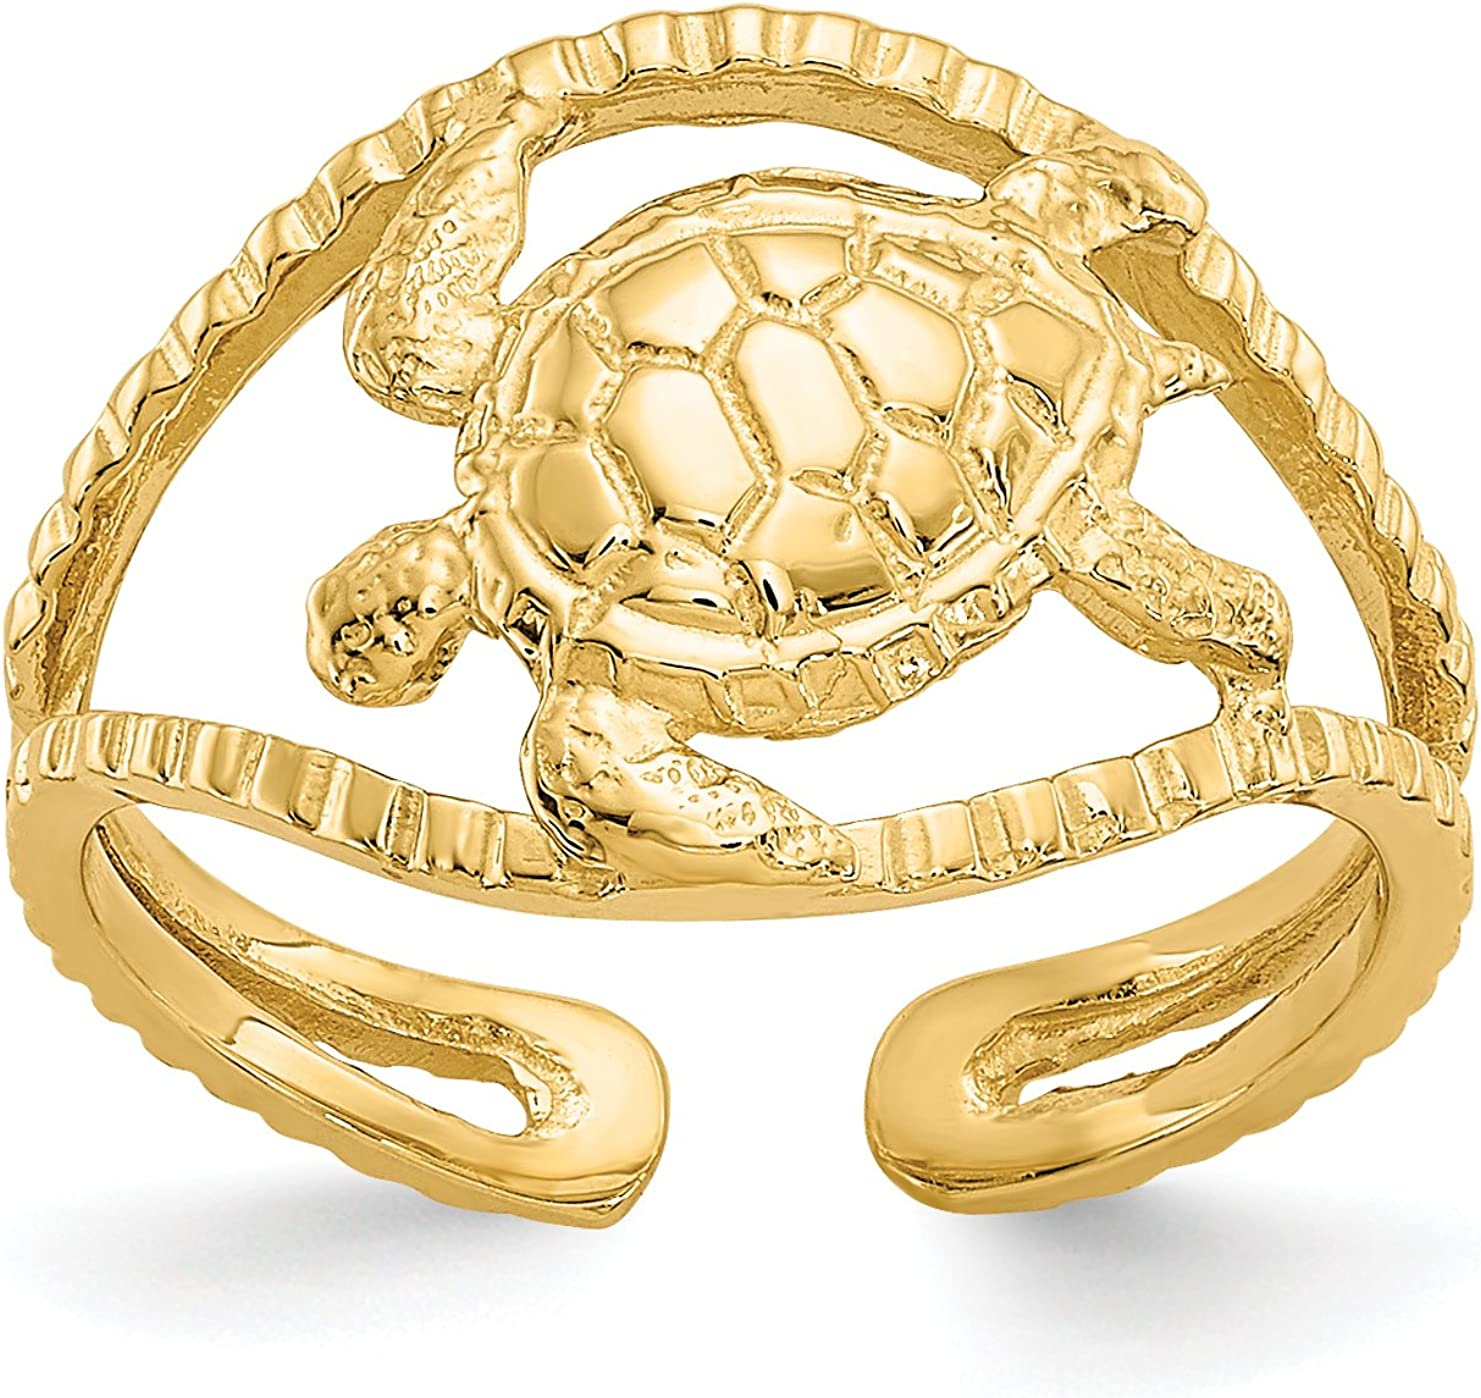 14k Yellow Gold Sea Turtle on Split Shank Toe Ring with Accented Band